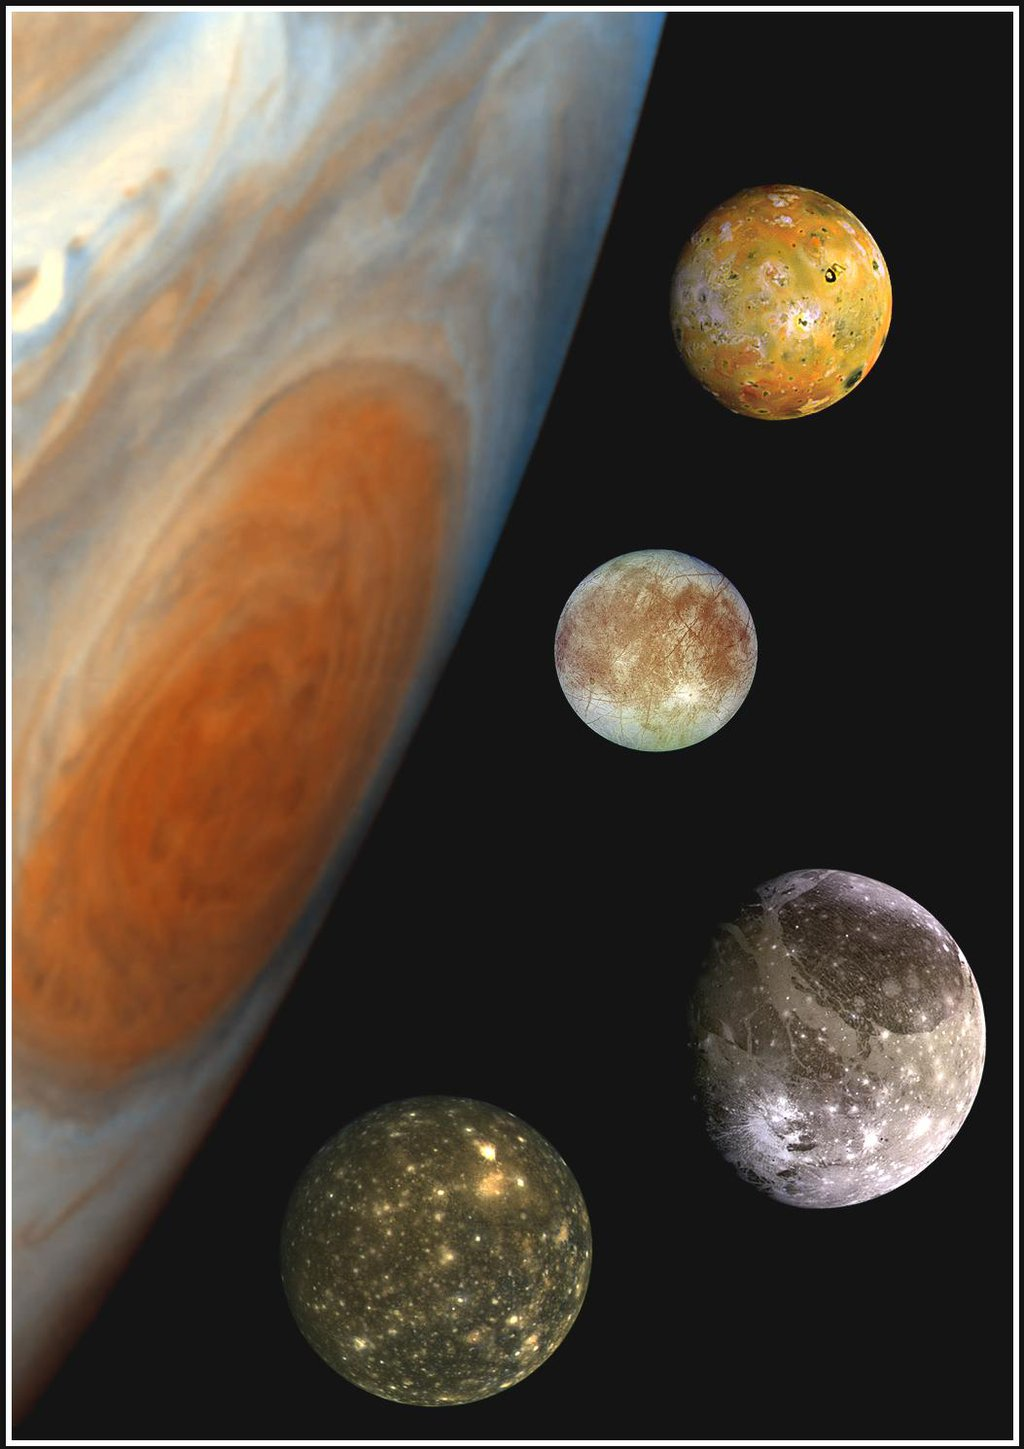 This 'family portrait,' a composite of the Jovian system, includes the edge of Jupiter with its Great Red Spot, and Jupiter's four largest moons, known as the Galilean satellites. From top to bottom, the moons shown are Io, Europa, Ganymede and Callisto.